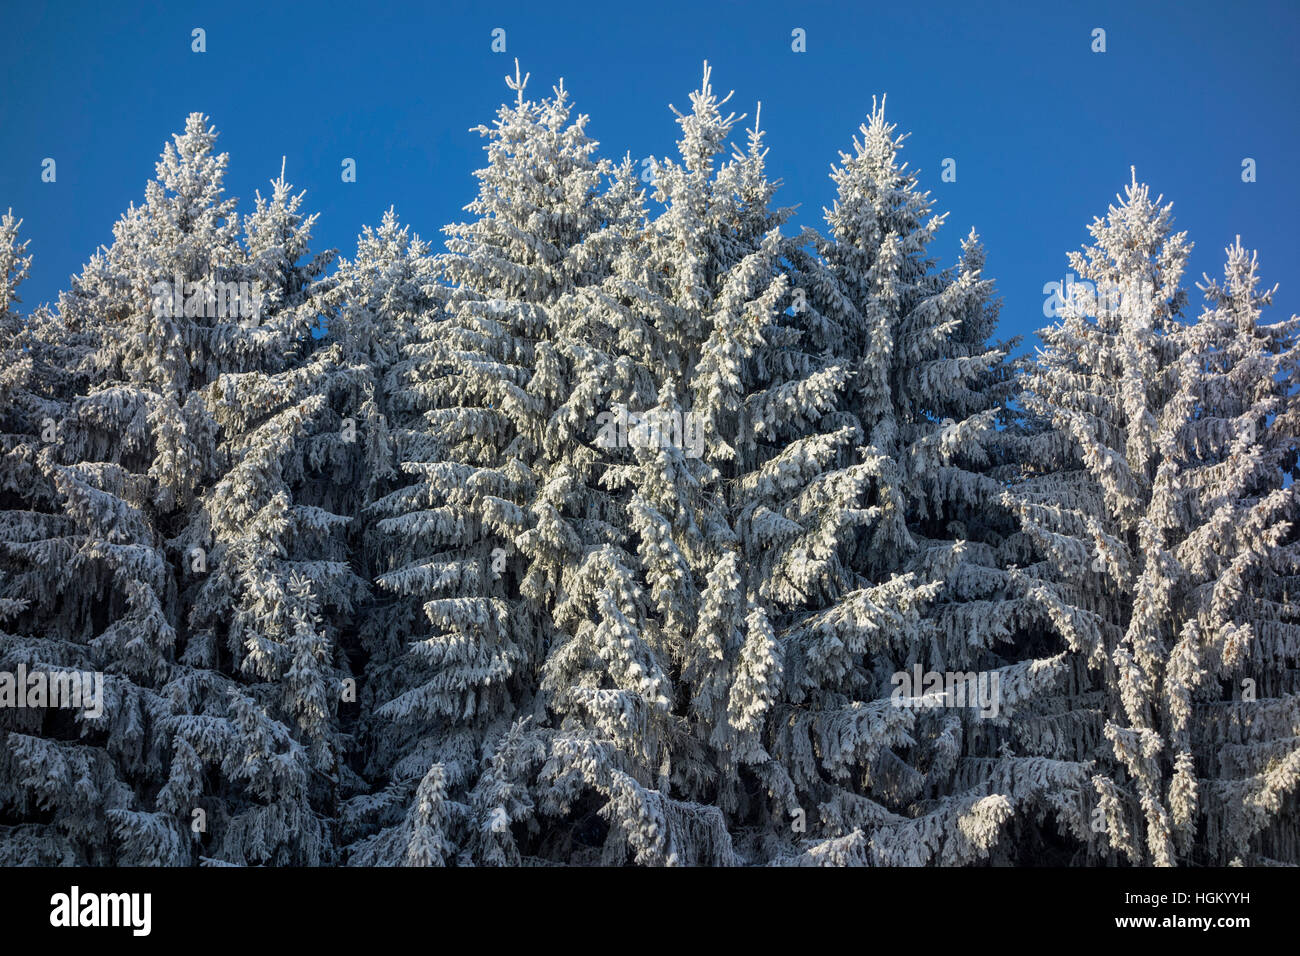 Wintry Spruces - Stock Image